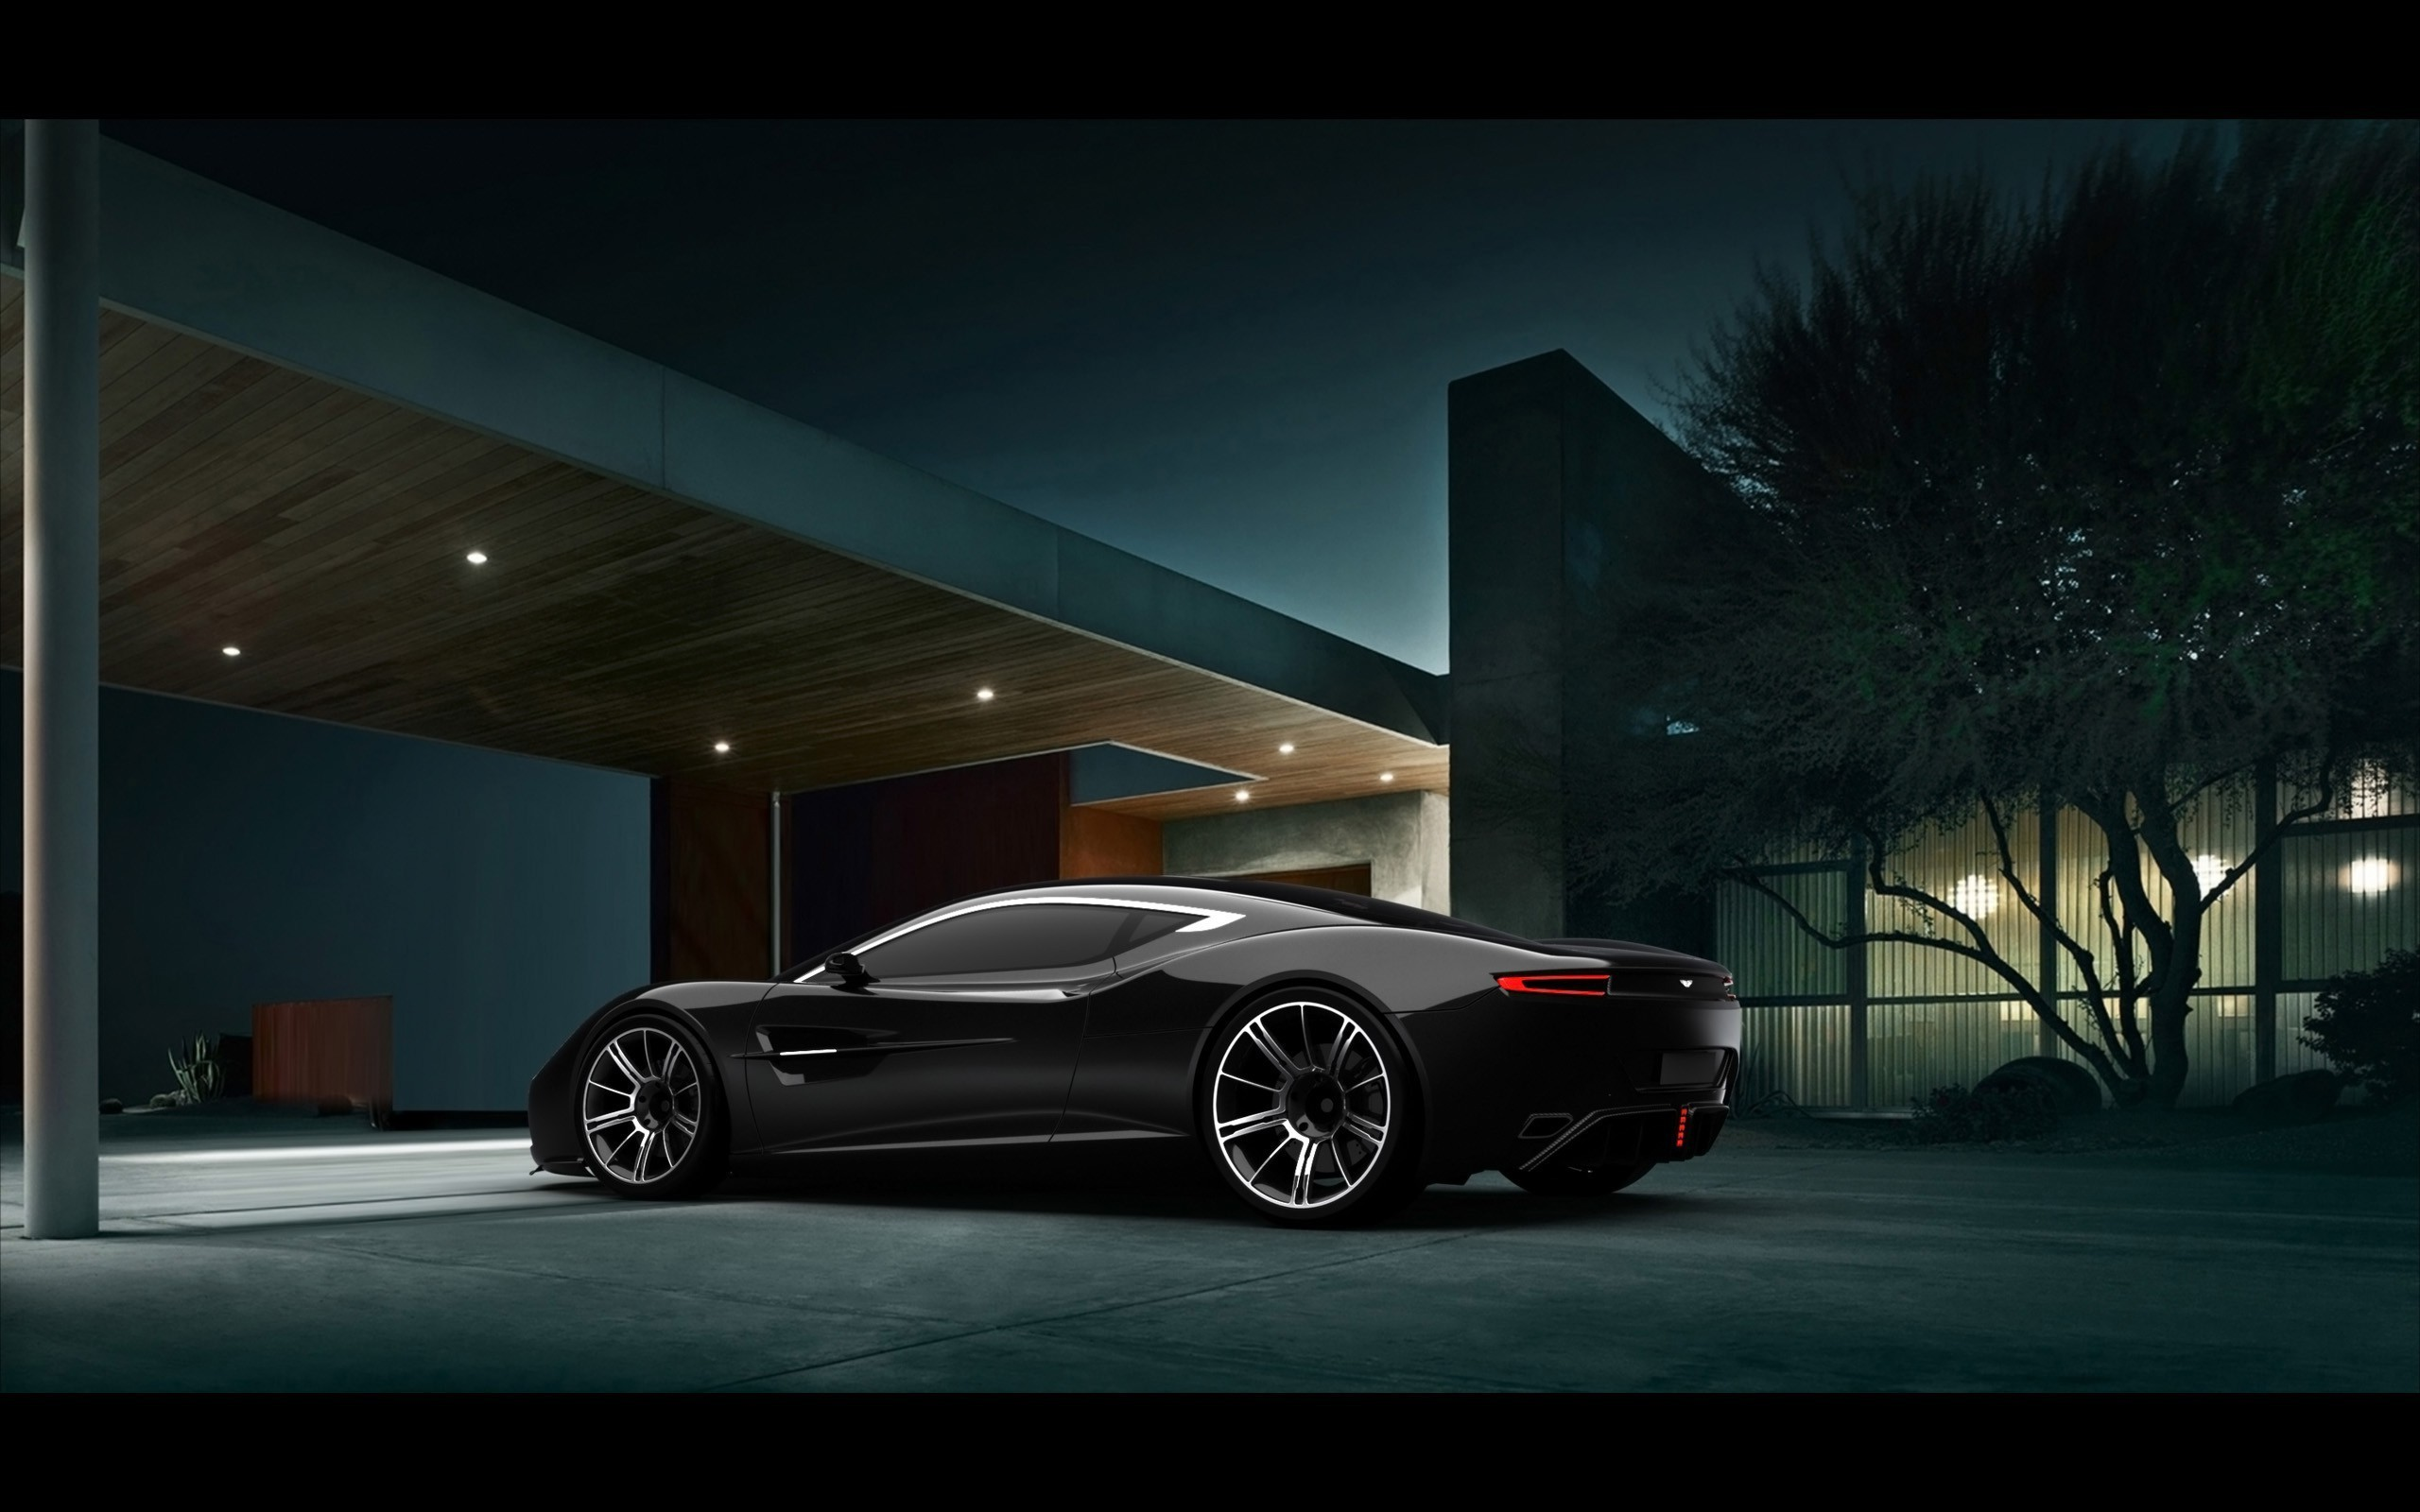 Aston Martin DBC wallpaper 14470 2560x1600